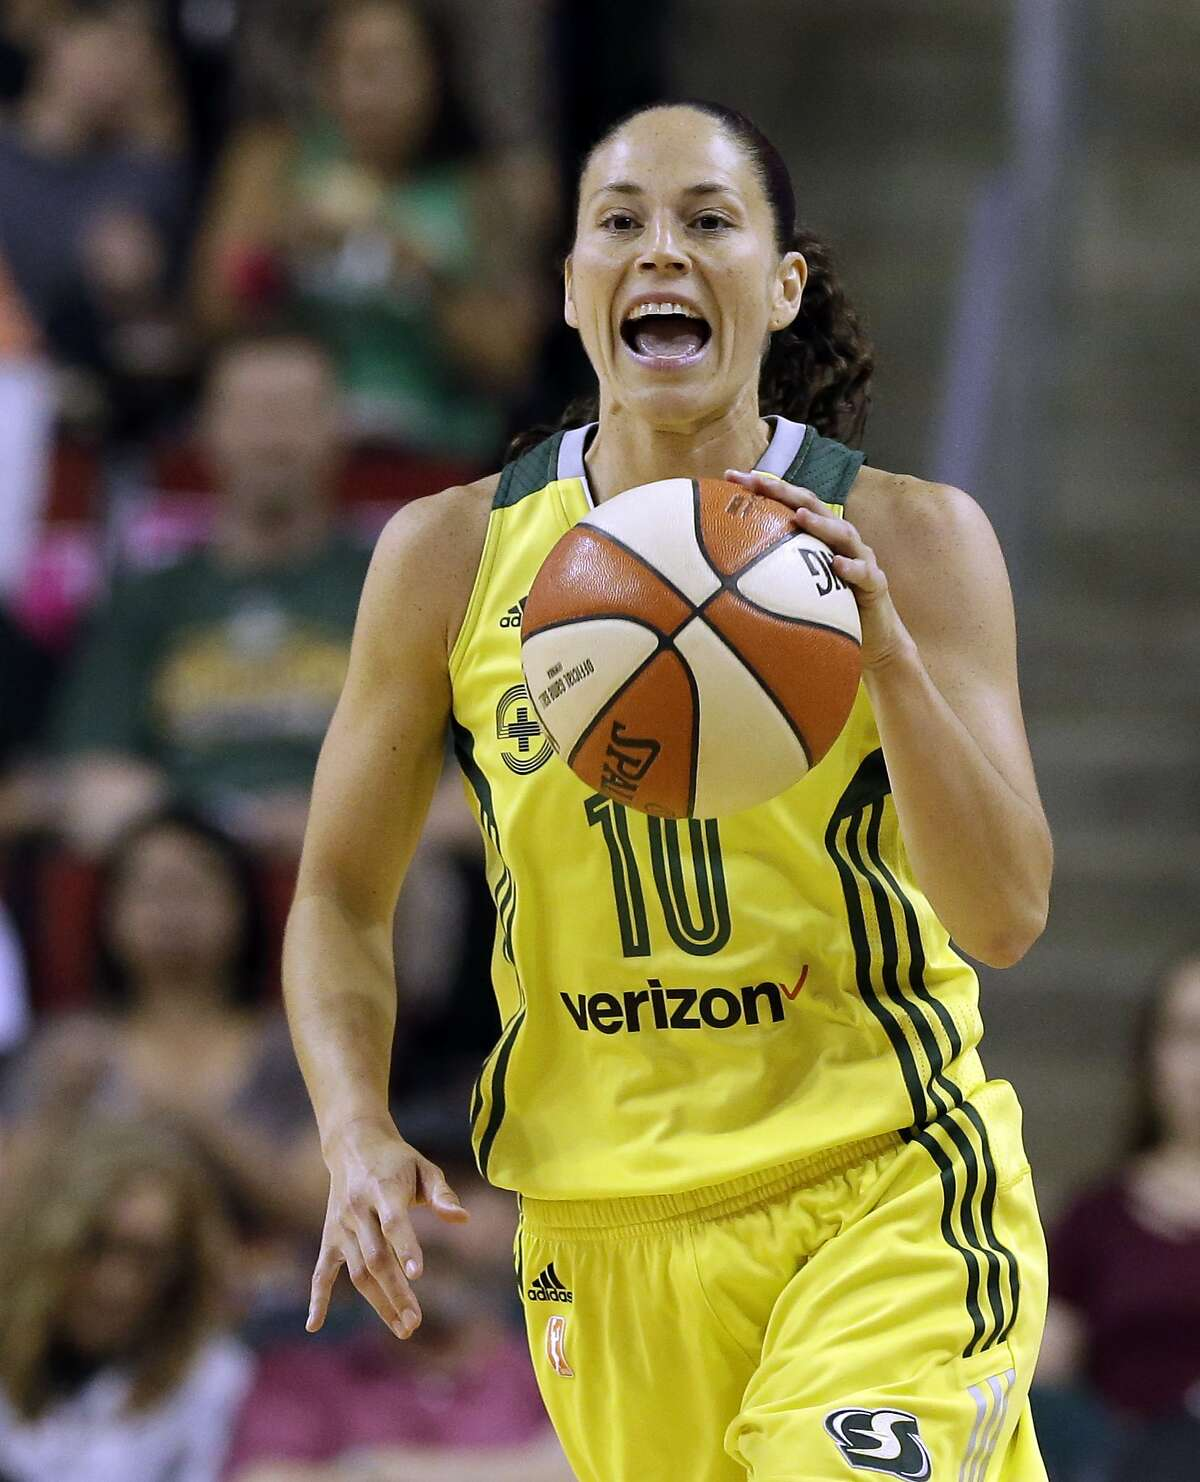 Former UConn hoops star, Sue Bird, comes out as gay In a wide-ranging interview with ESPN.com in July, Seattle Storm point guard and two-time UConn national champion Sue Bird came out as gay, revealing her relationship with Seattle Reign midfielder Megan Rapinoe.